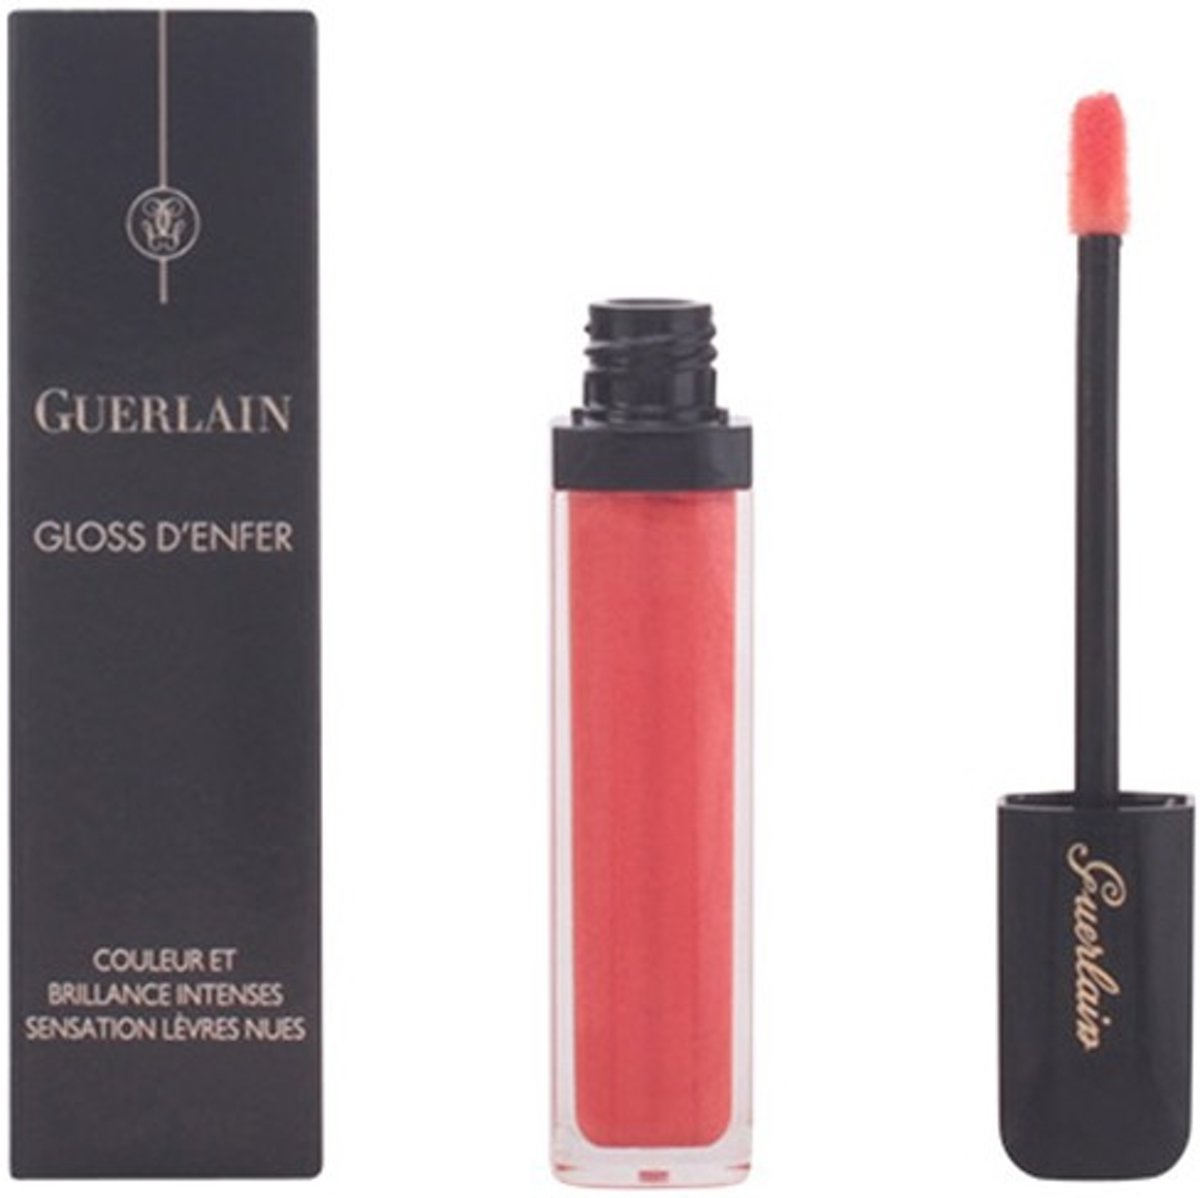 Guerlain Gloss DEnfer Maxi Shine Intense Colour 7.5 ml